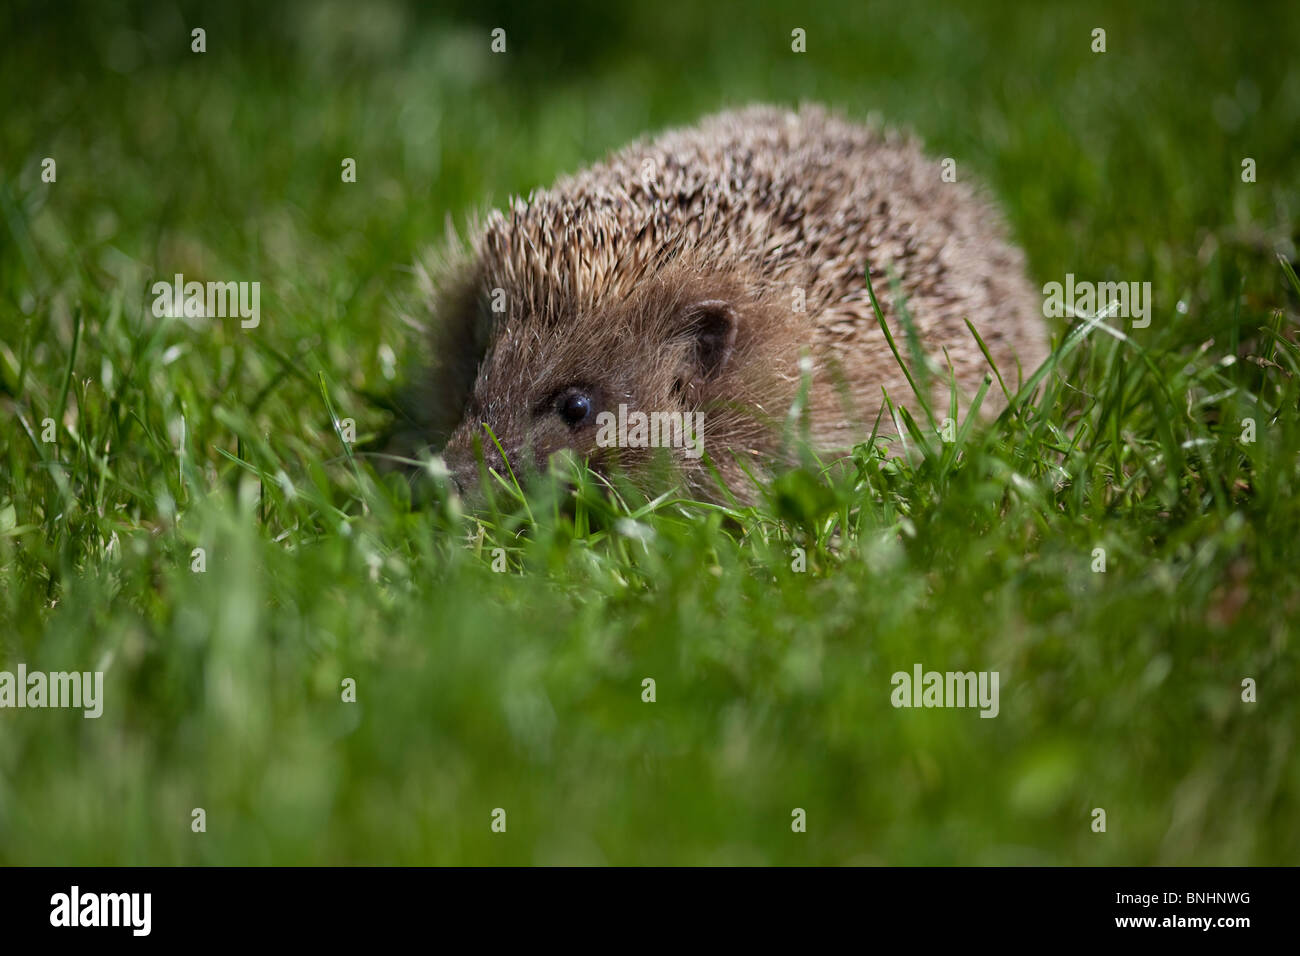 European Hedgehog (Erinaceinae) close up in lush grass facing camera taken under controlled conditions - Stock Image